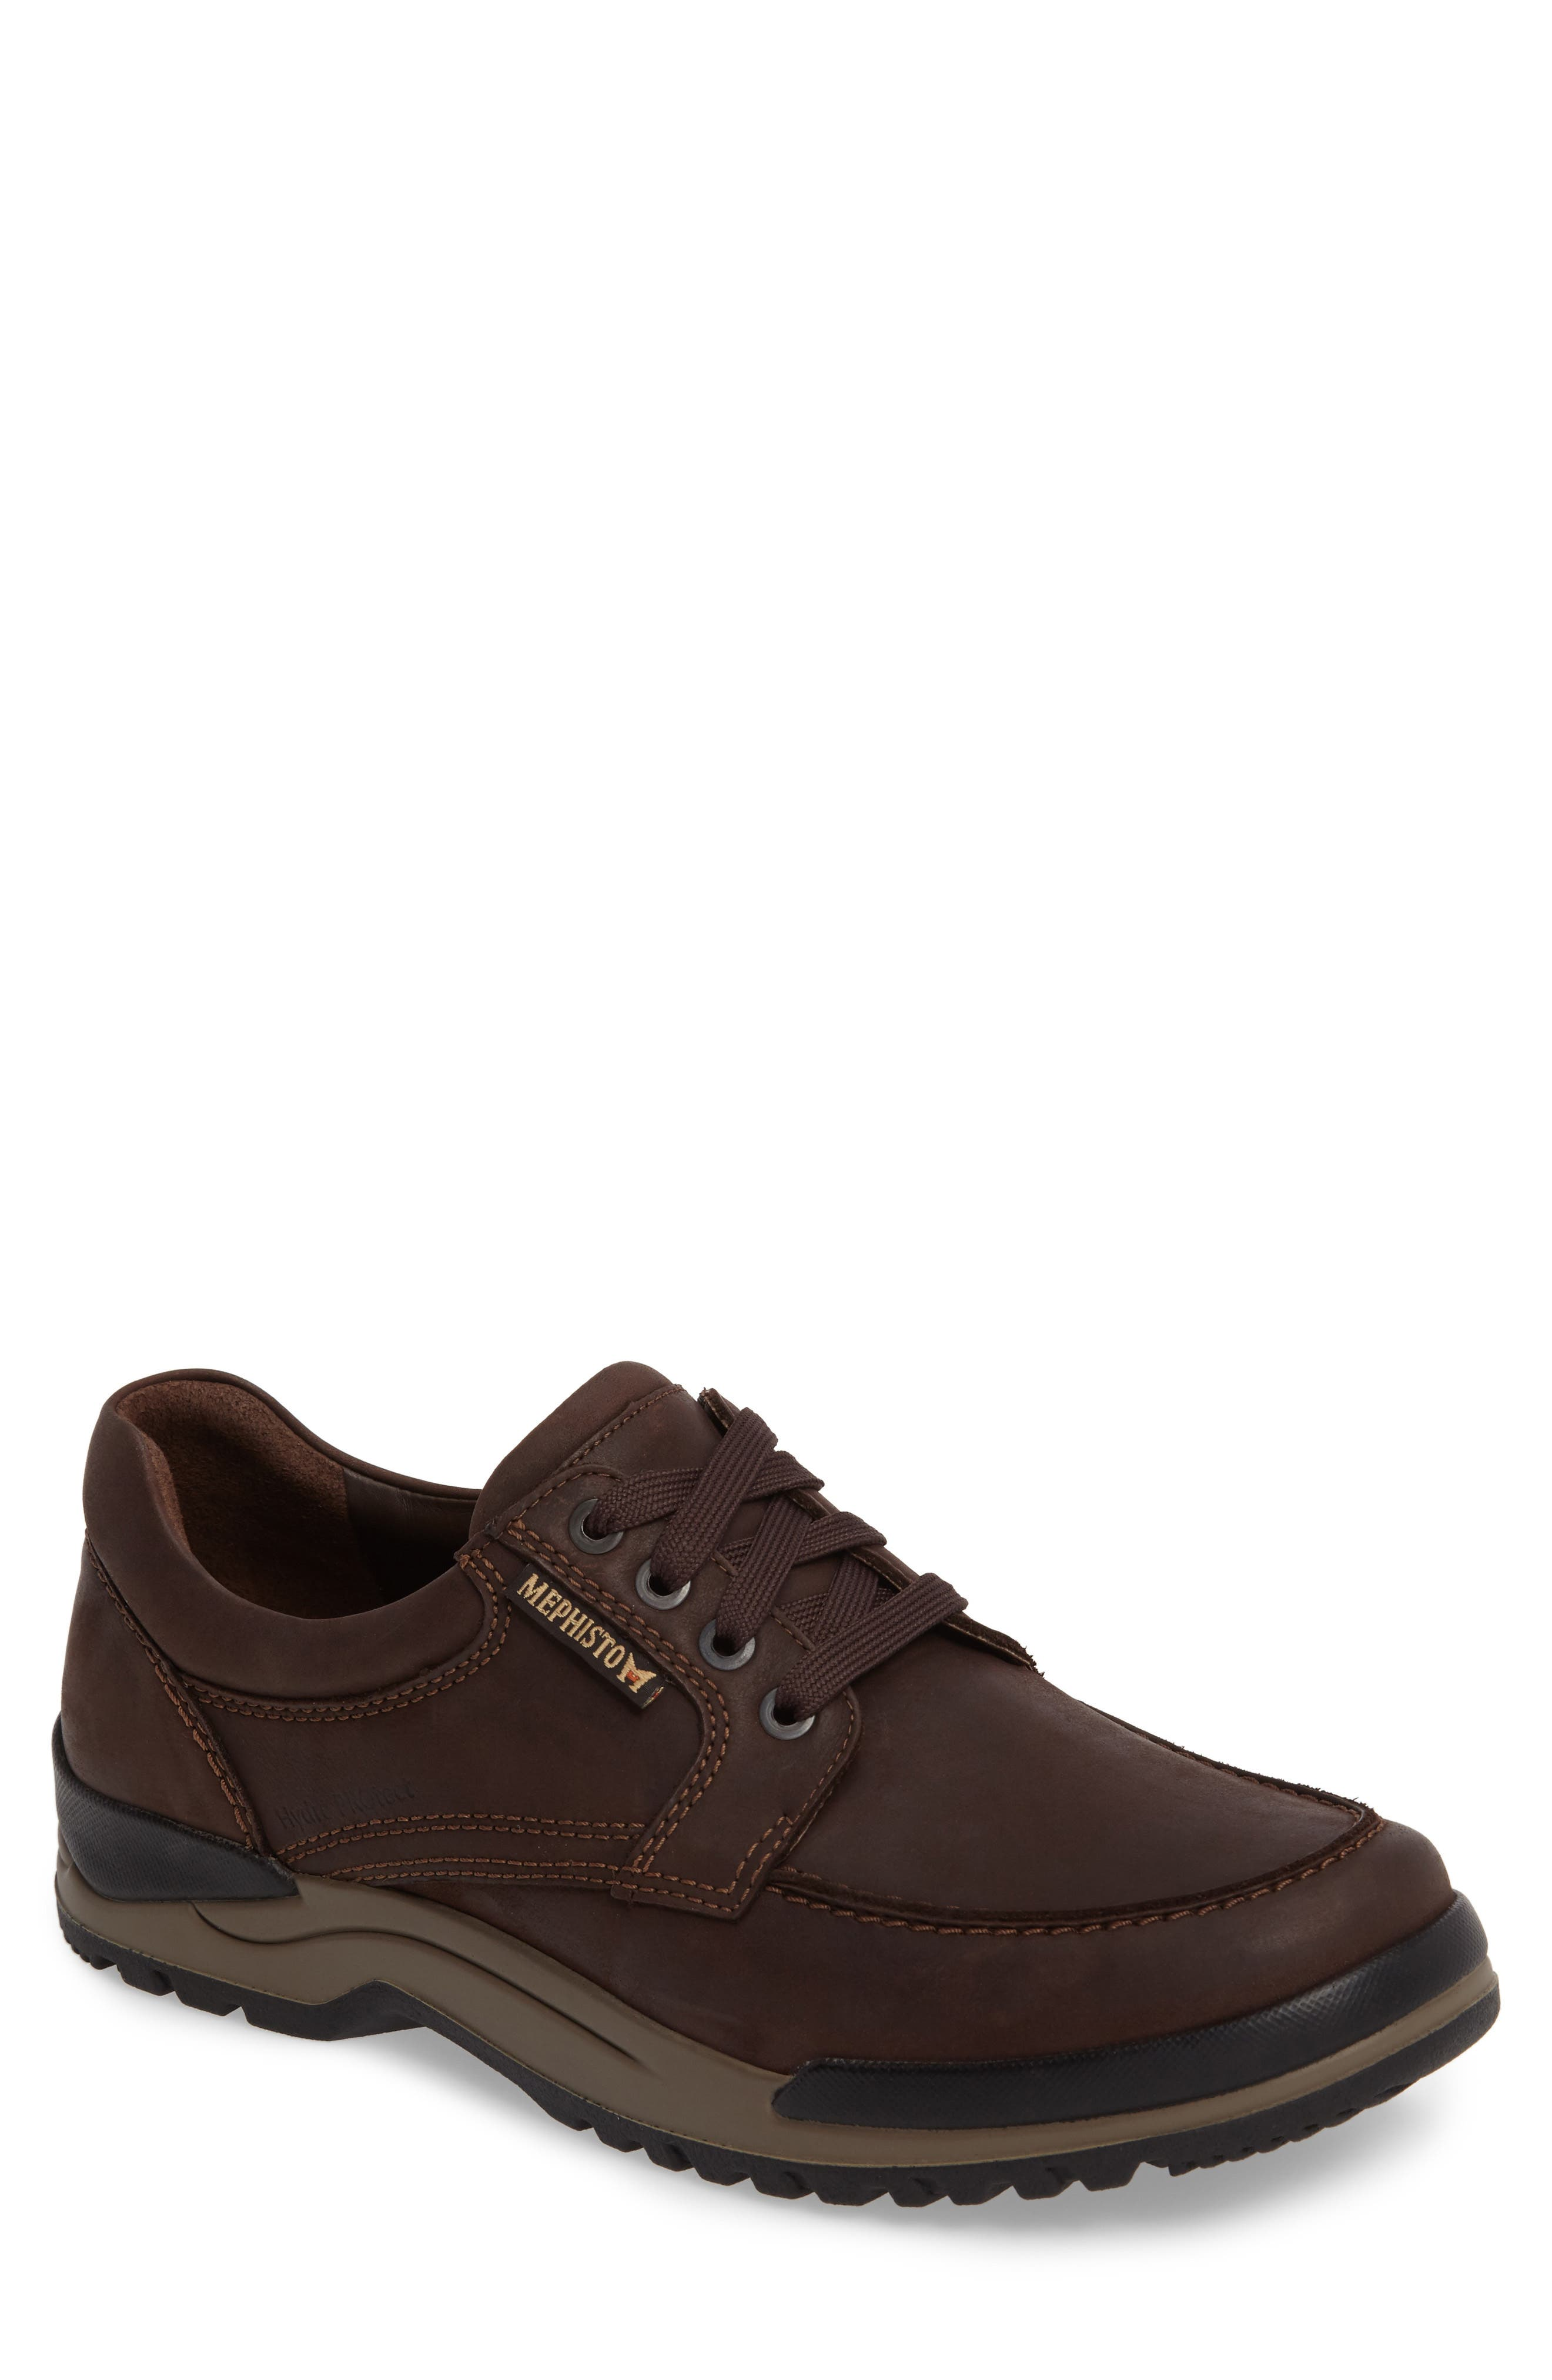 MEPHISTO Charles Waterproof Walking Shoe, Main, color, DARK BROWN